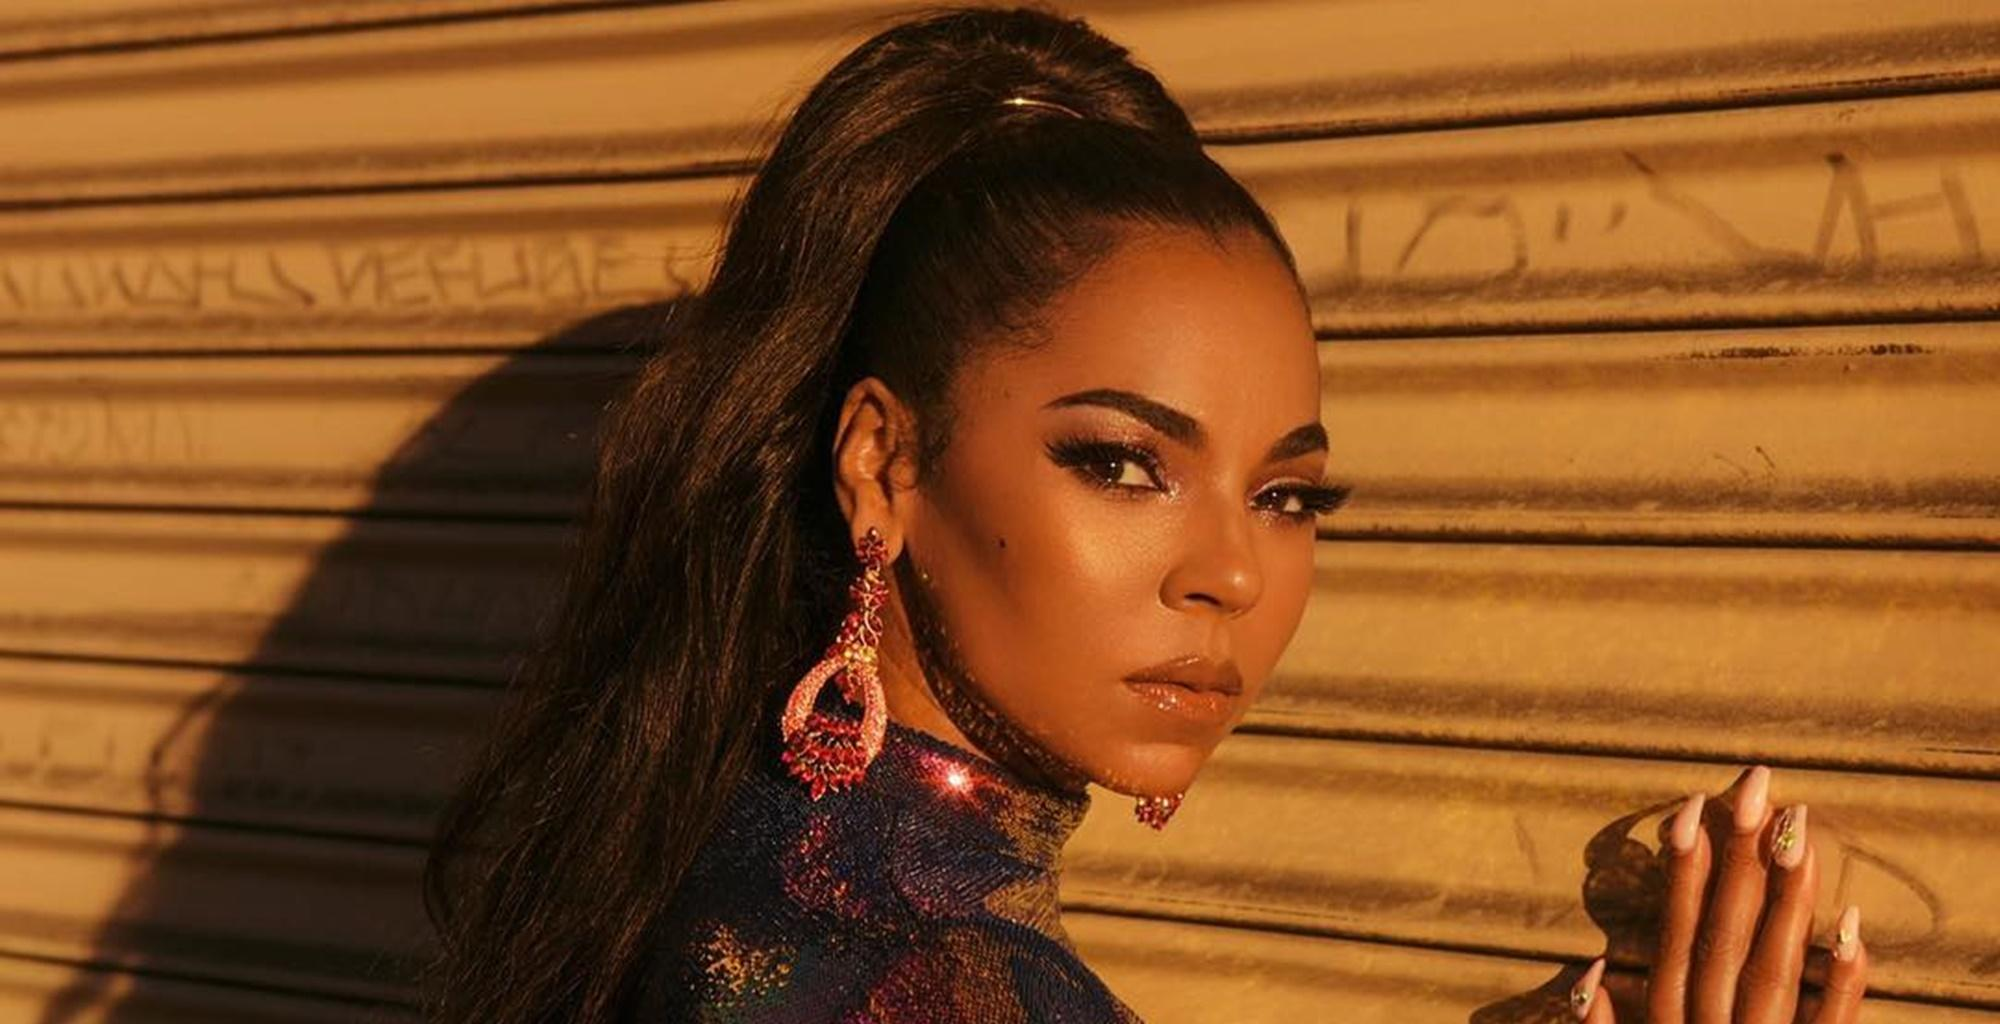 Ashanti Dons Racy Dress At 'Stuck' Movie Premiere -- Fans Say This Video Featuring Her Dangerous Curves Is Just Too Much Too Handle